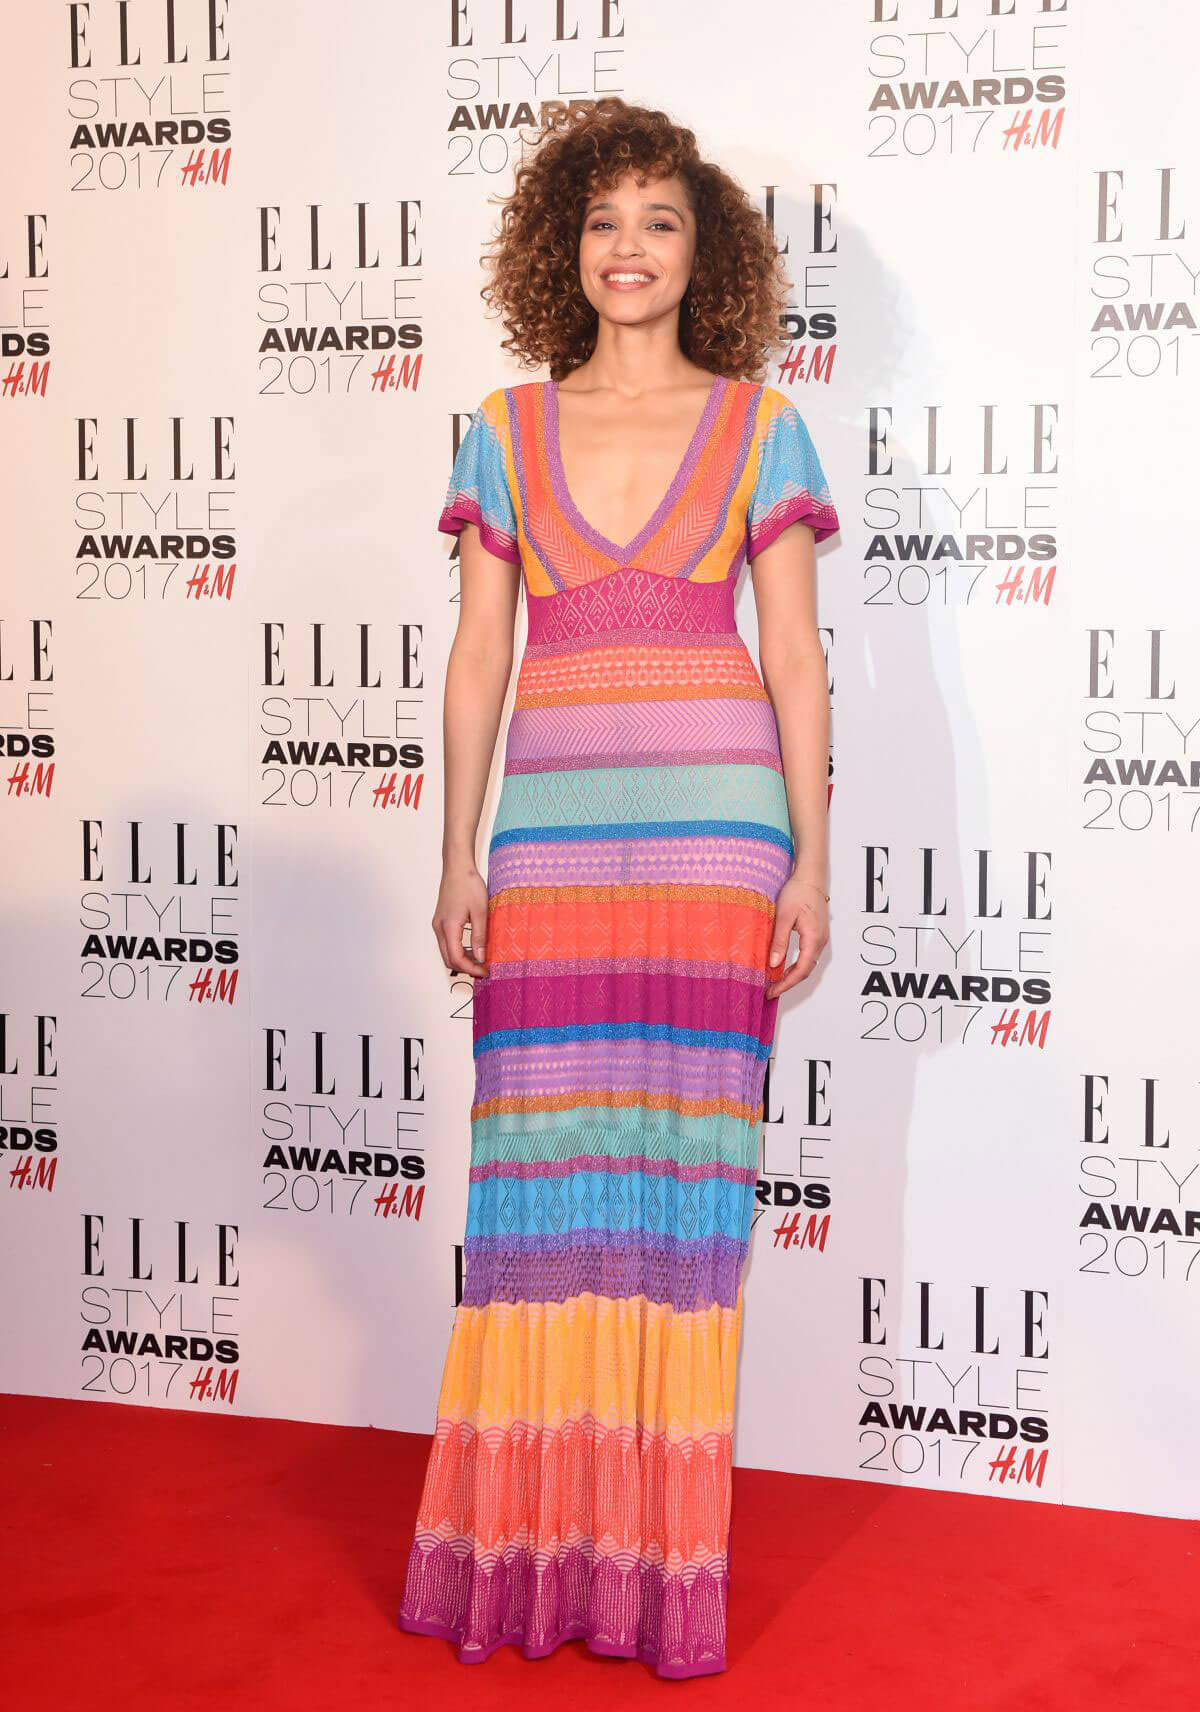 Izzy Bizu at Elle Style Awards 2017 in London